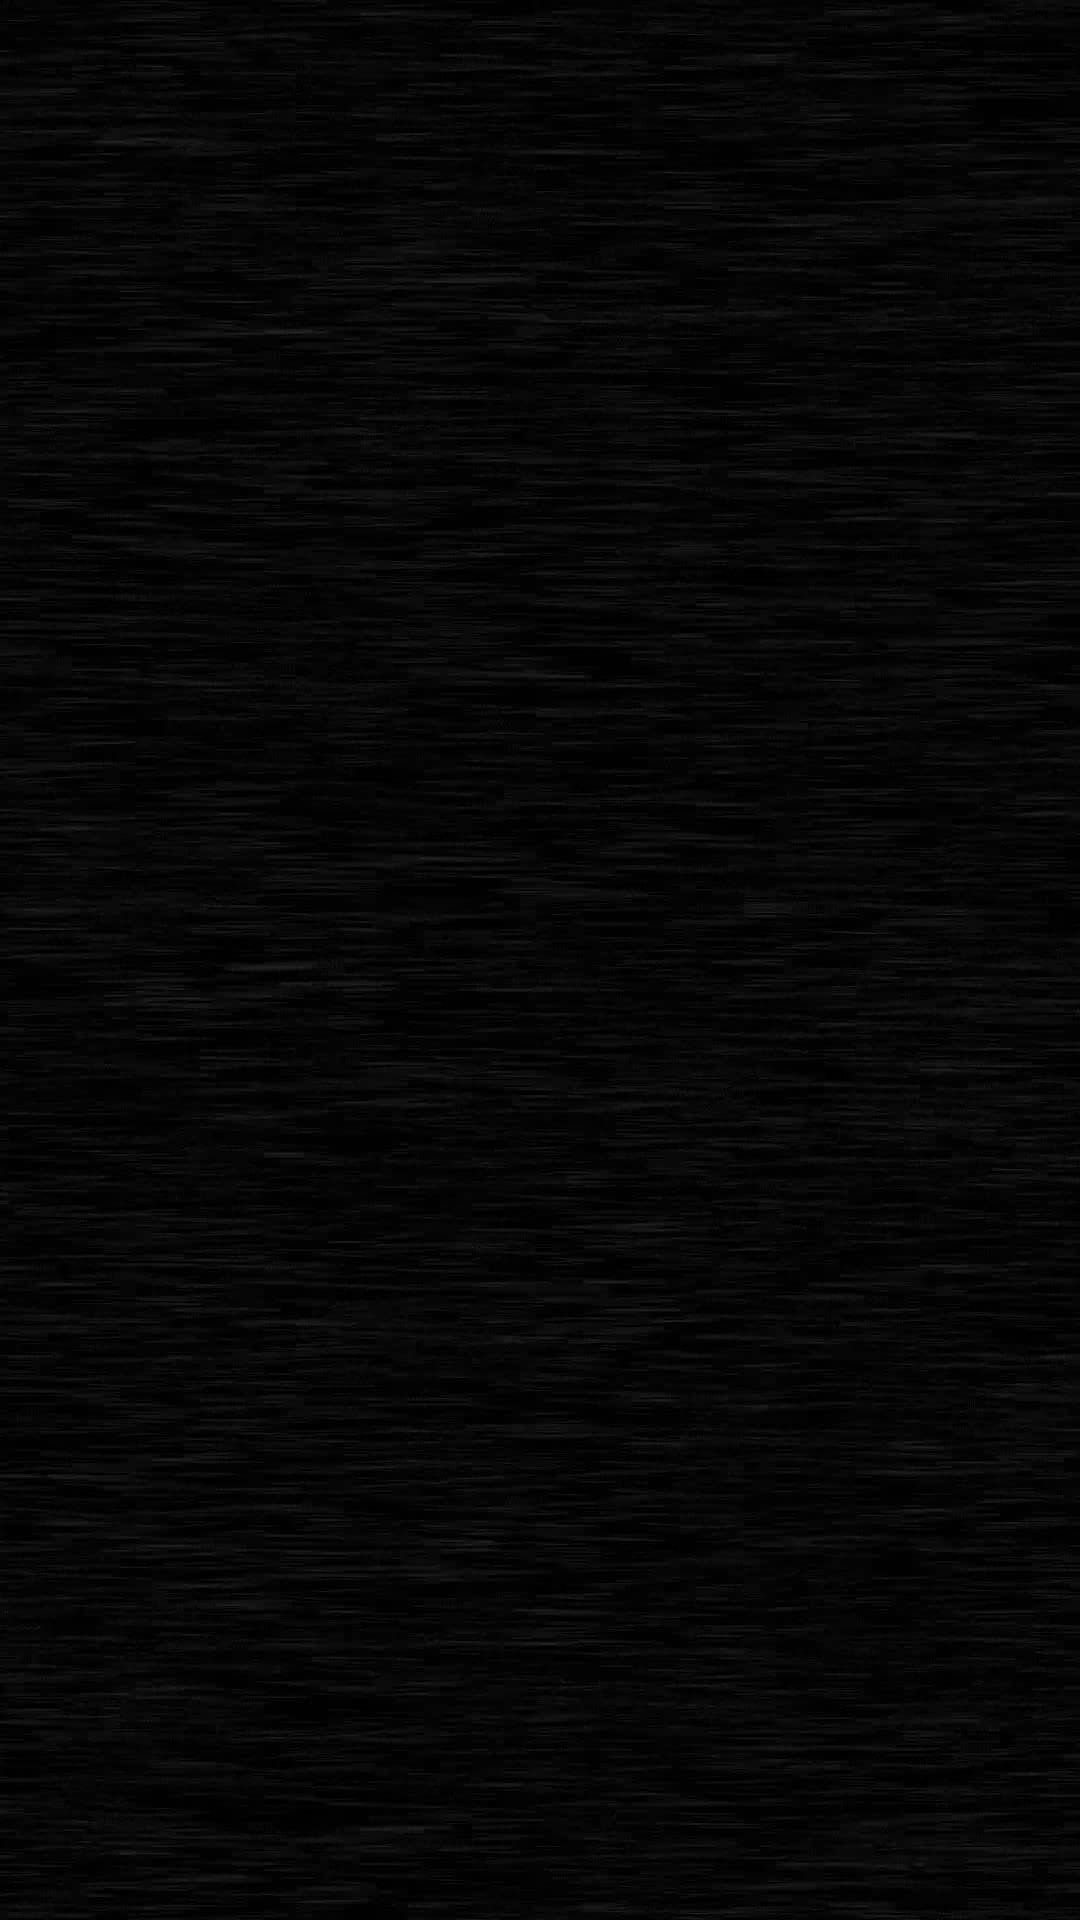 Black Background Better For Eyes | iPhoneWallpapers | Metal texture, Iphone wallpaper, Black ...